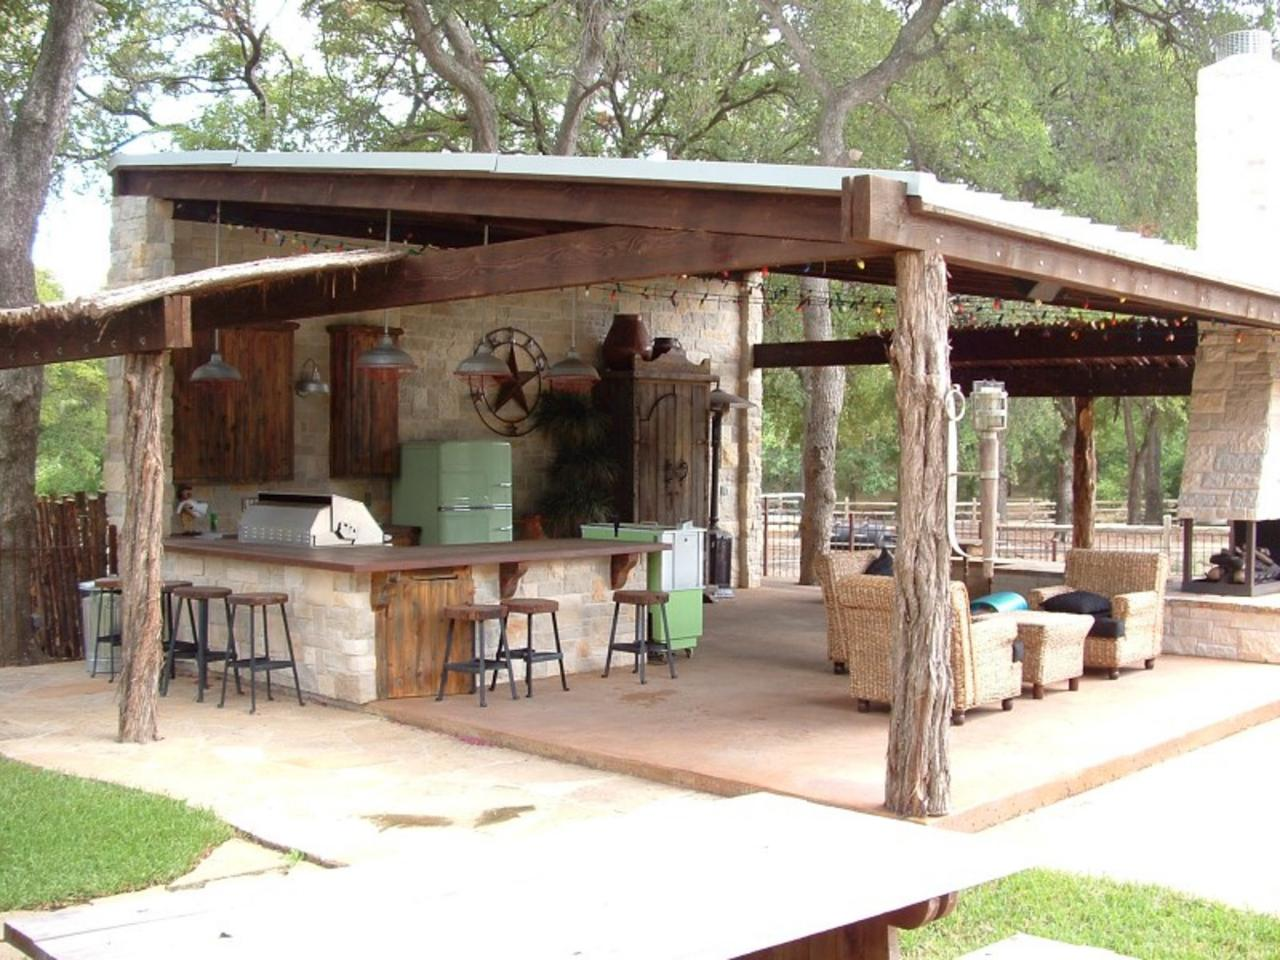 Ranch style entertaining a rustic covered outdoor kitchen for Outdoor cabana designs